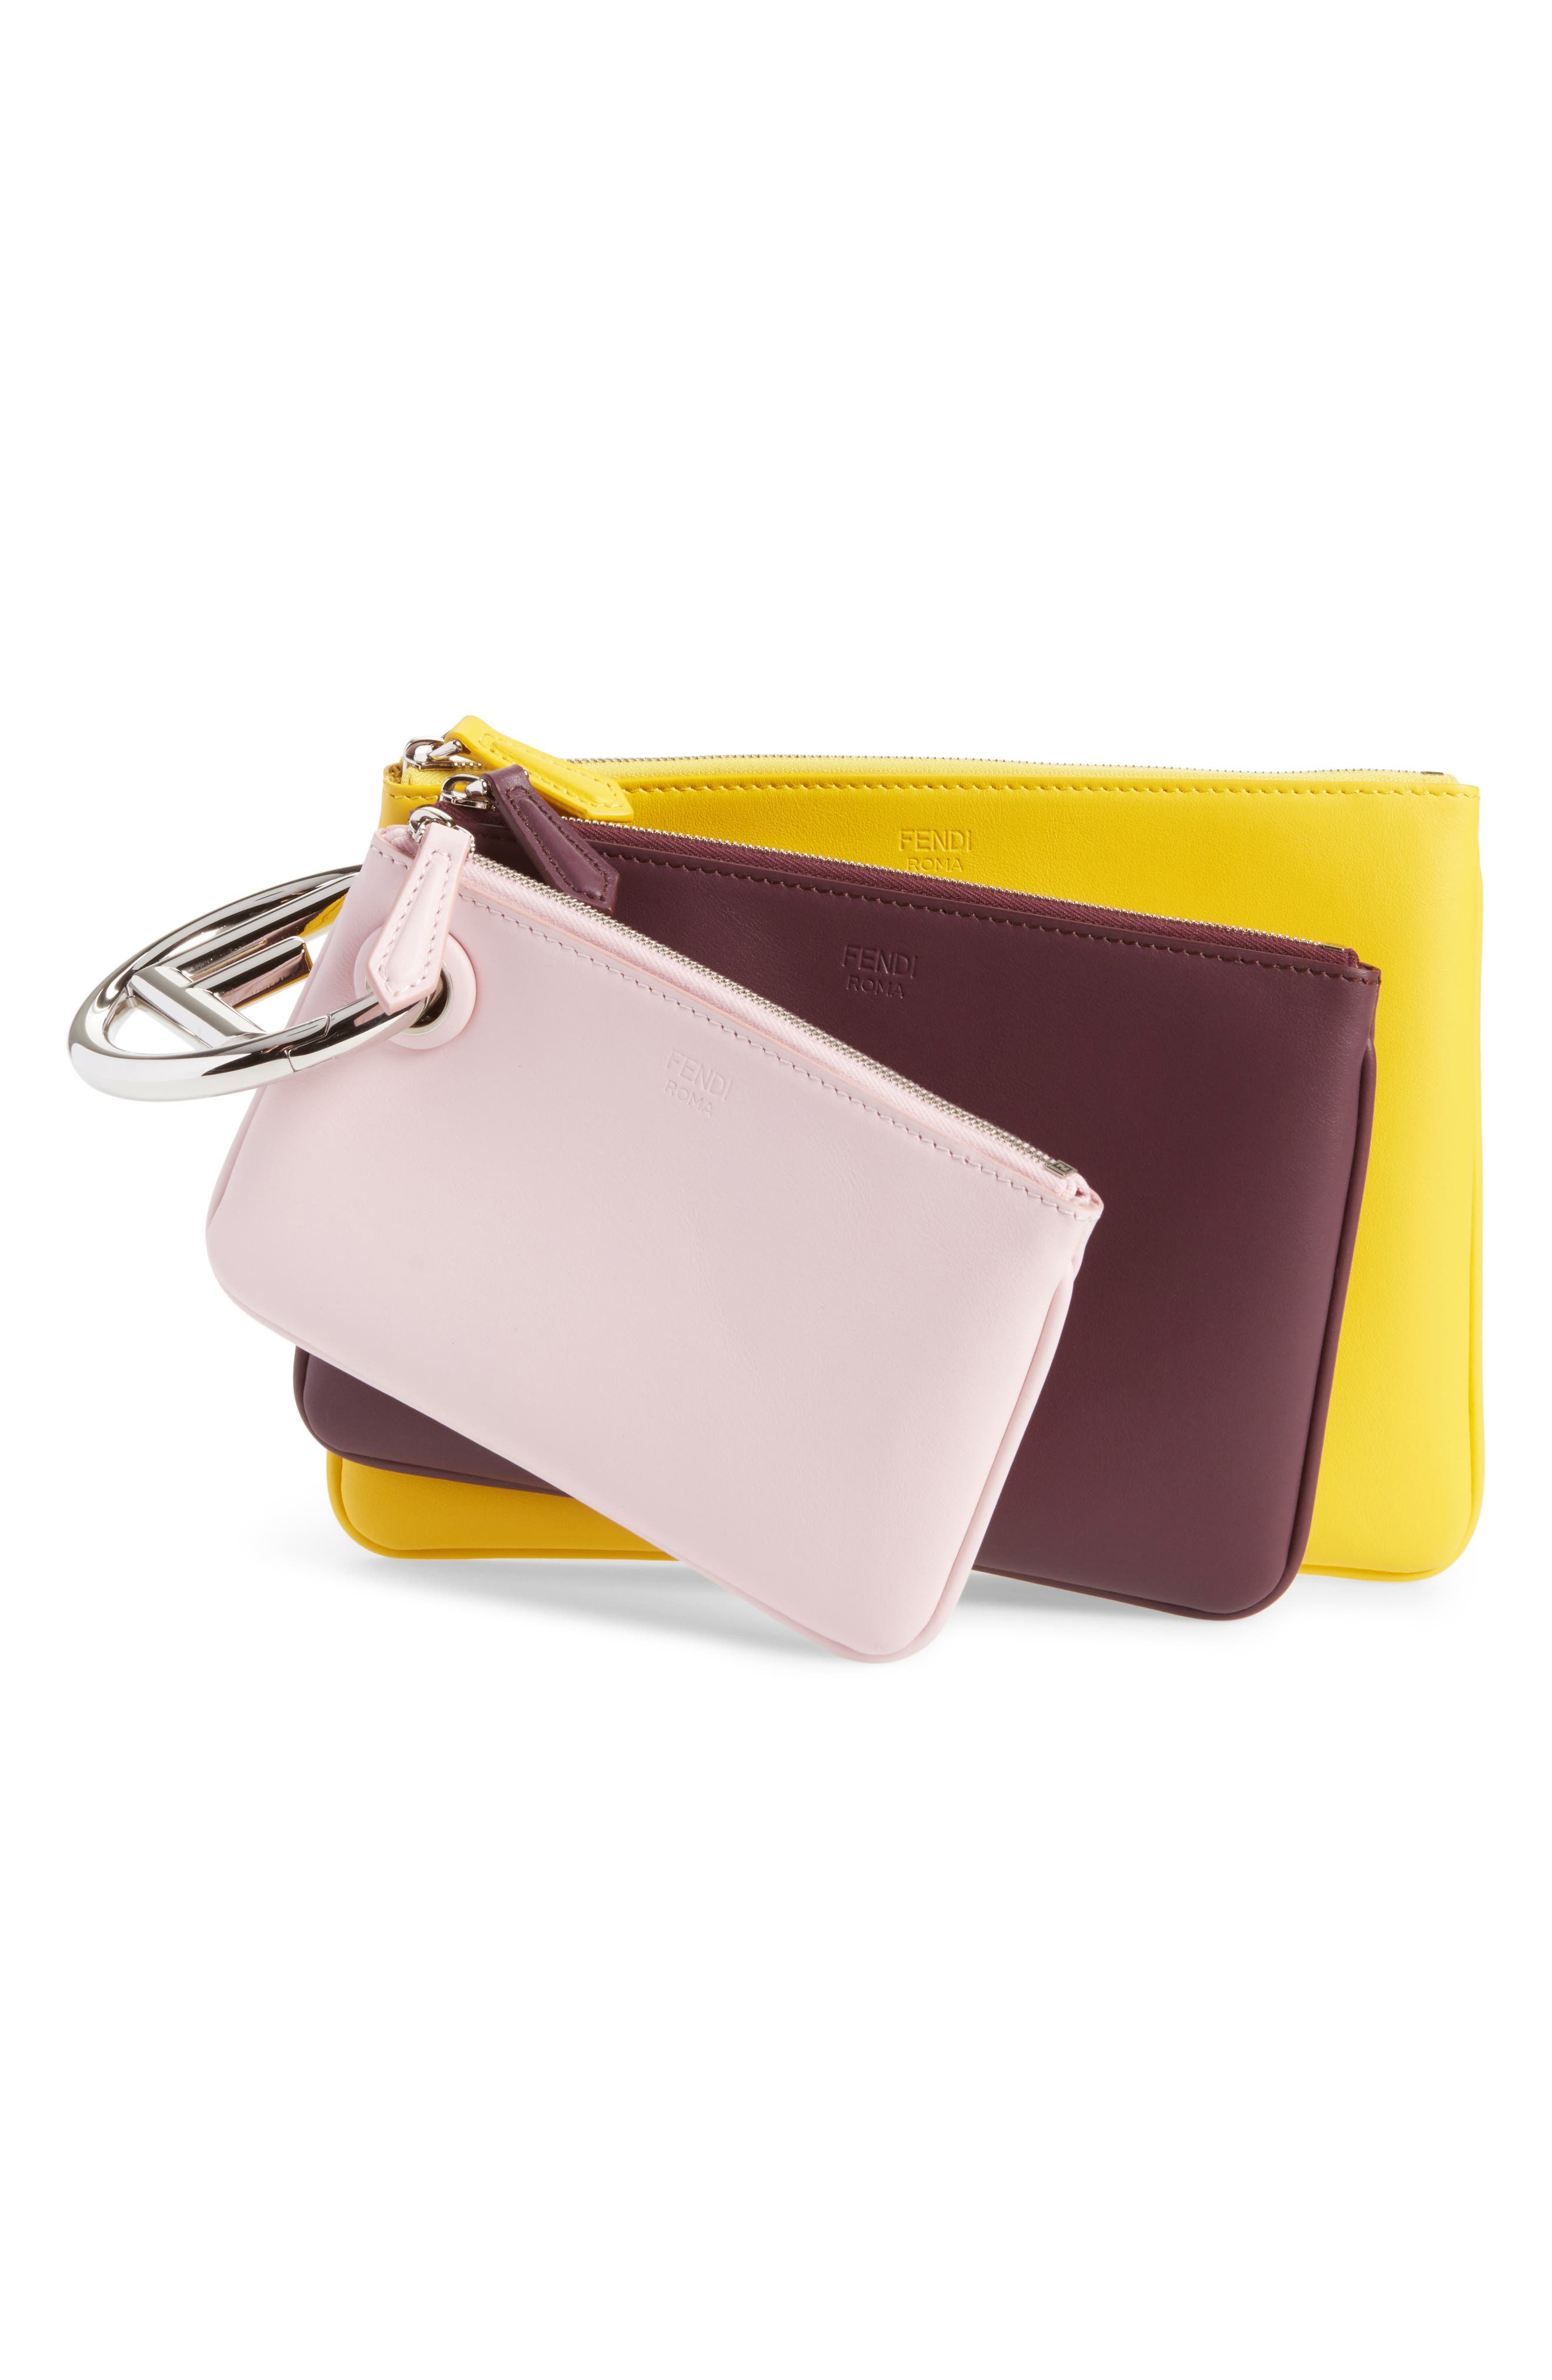 Multicolor Triplette Set of Three Leather Pouches,                             Main thumbnail 1, color,                             Pink/ Burgundy/ Yellow